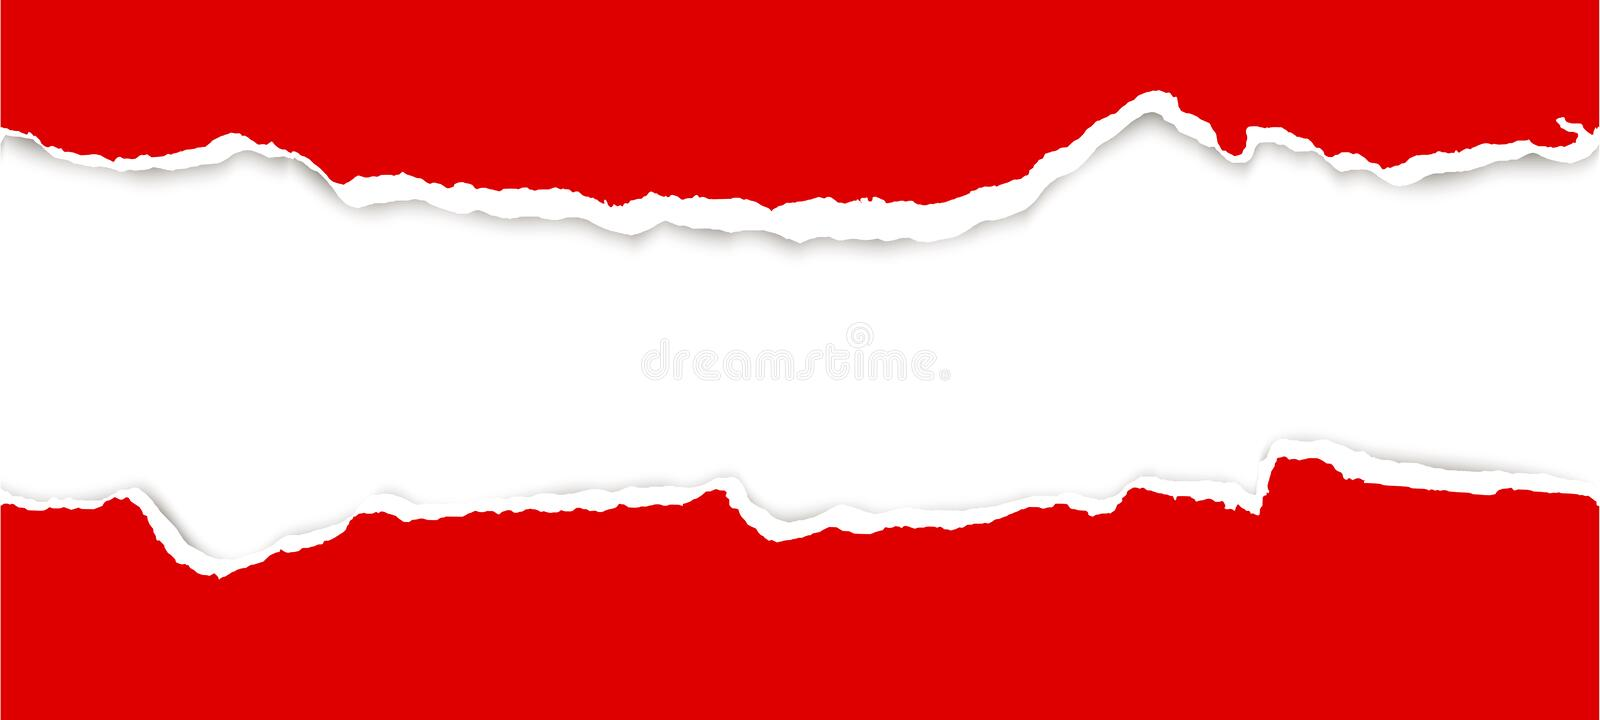 Ripped open paper. Upper and lower part of ripped open paper colored red royalty free illustration